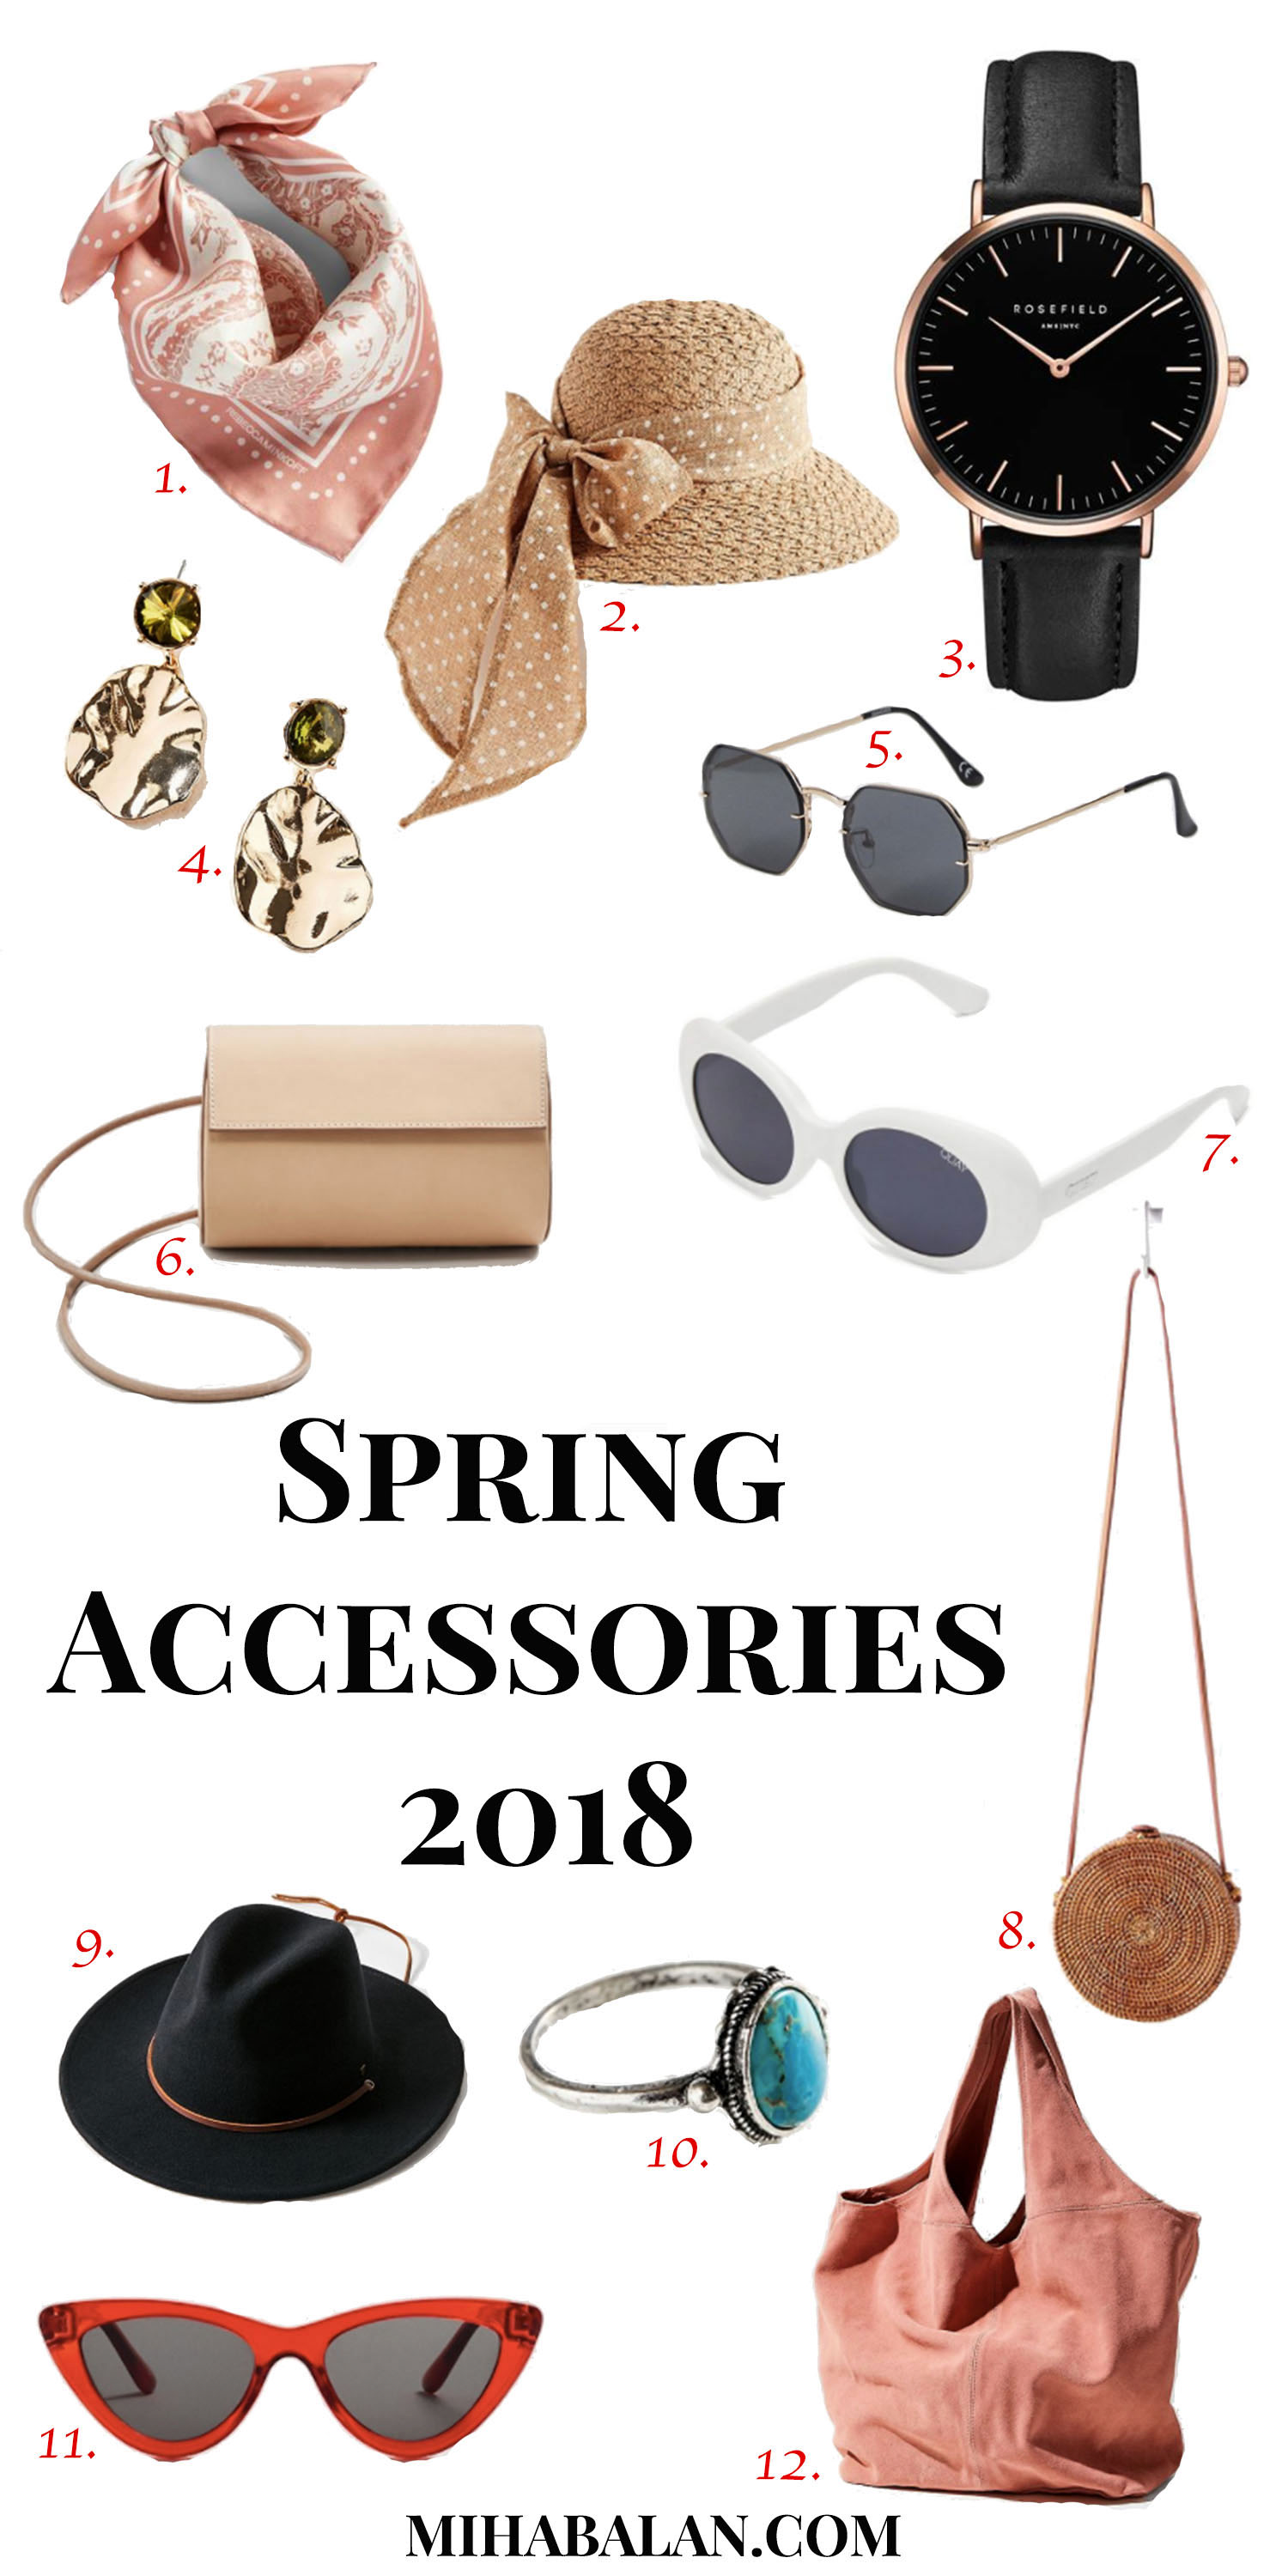 spring accessories 2018, hats, sunglasses, hair accessories, spring bags, watches, jewellery